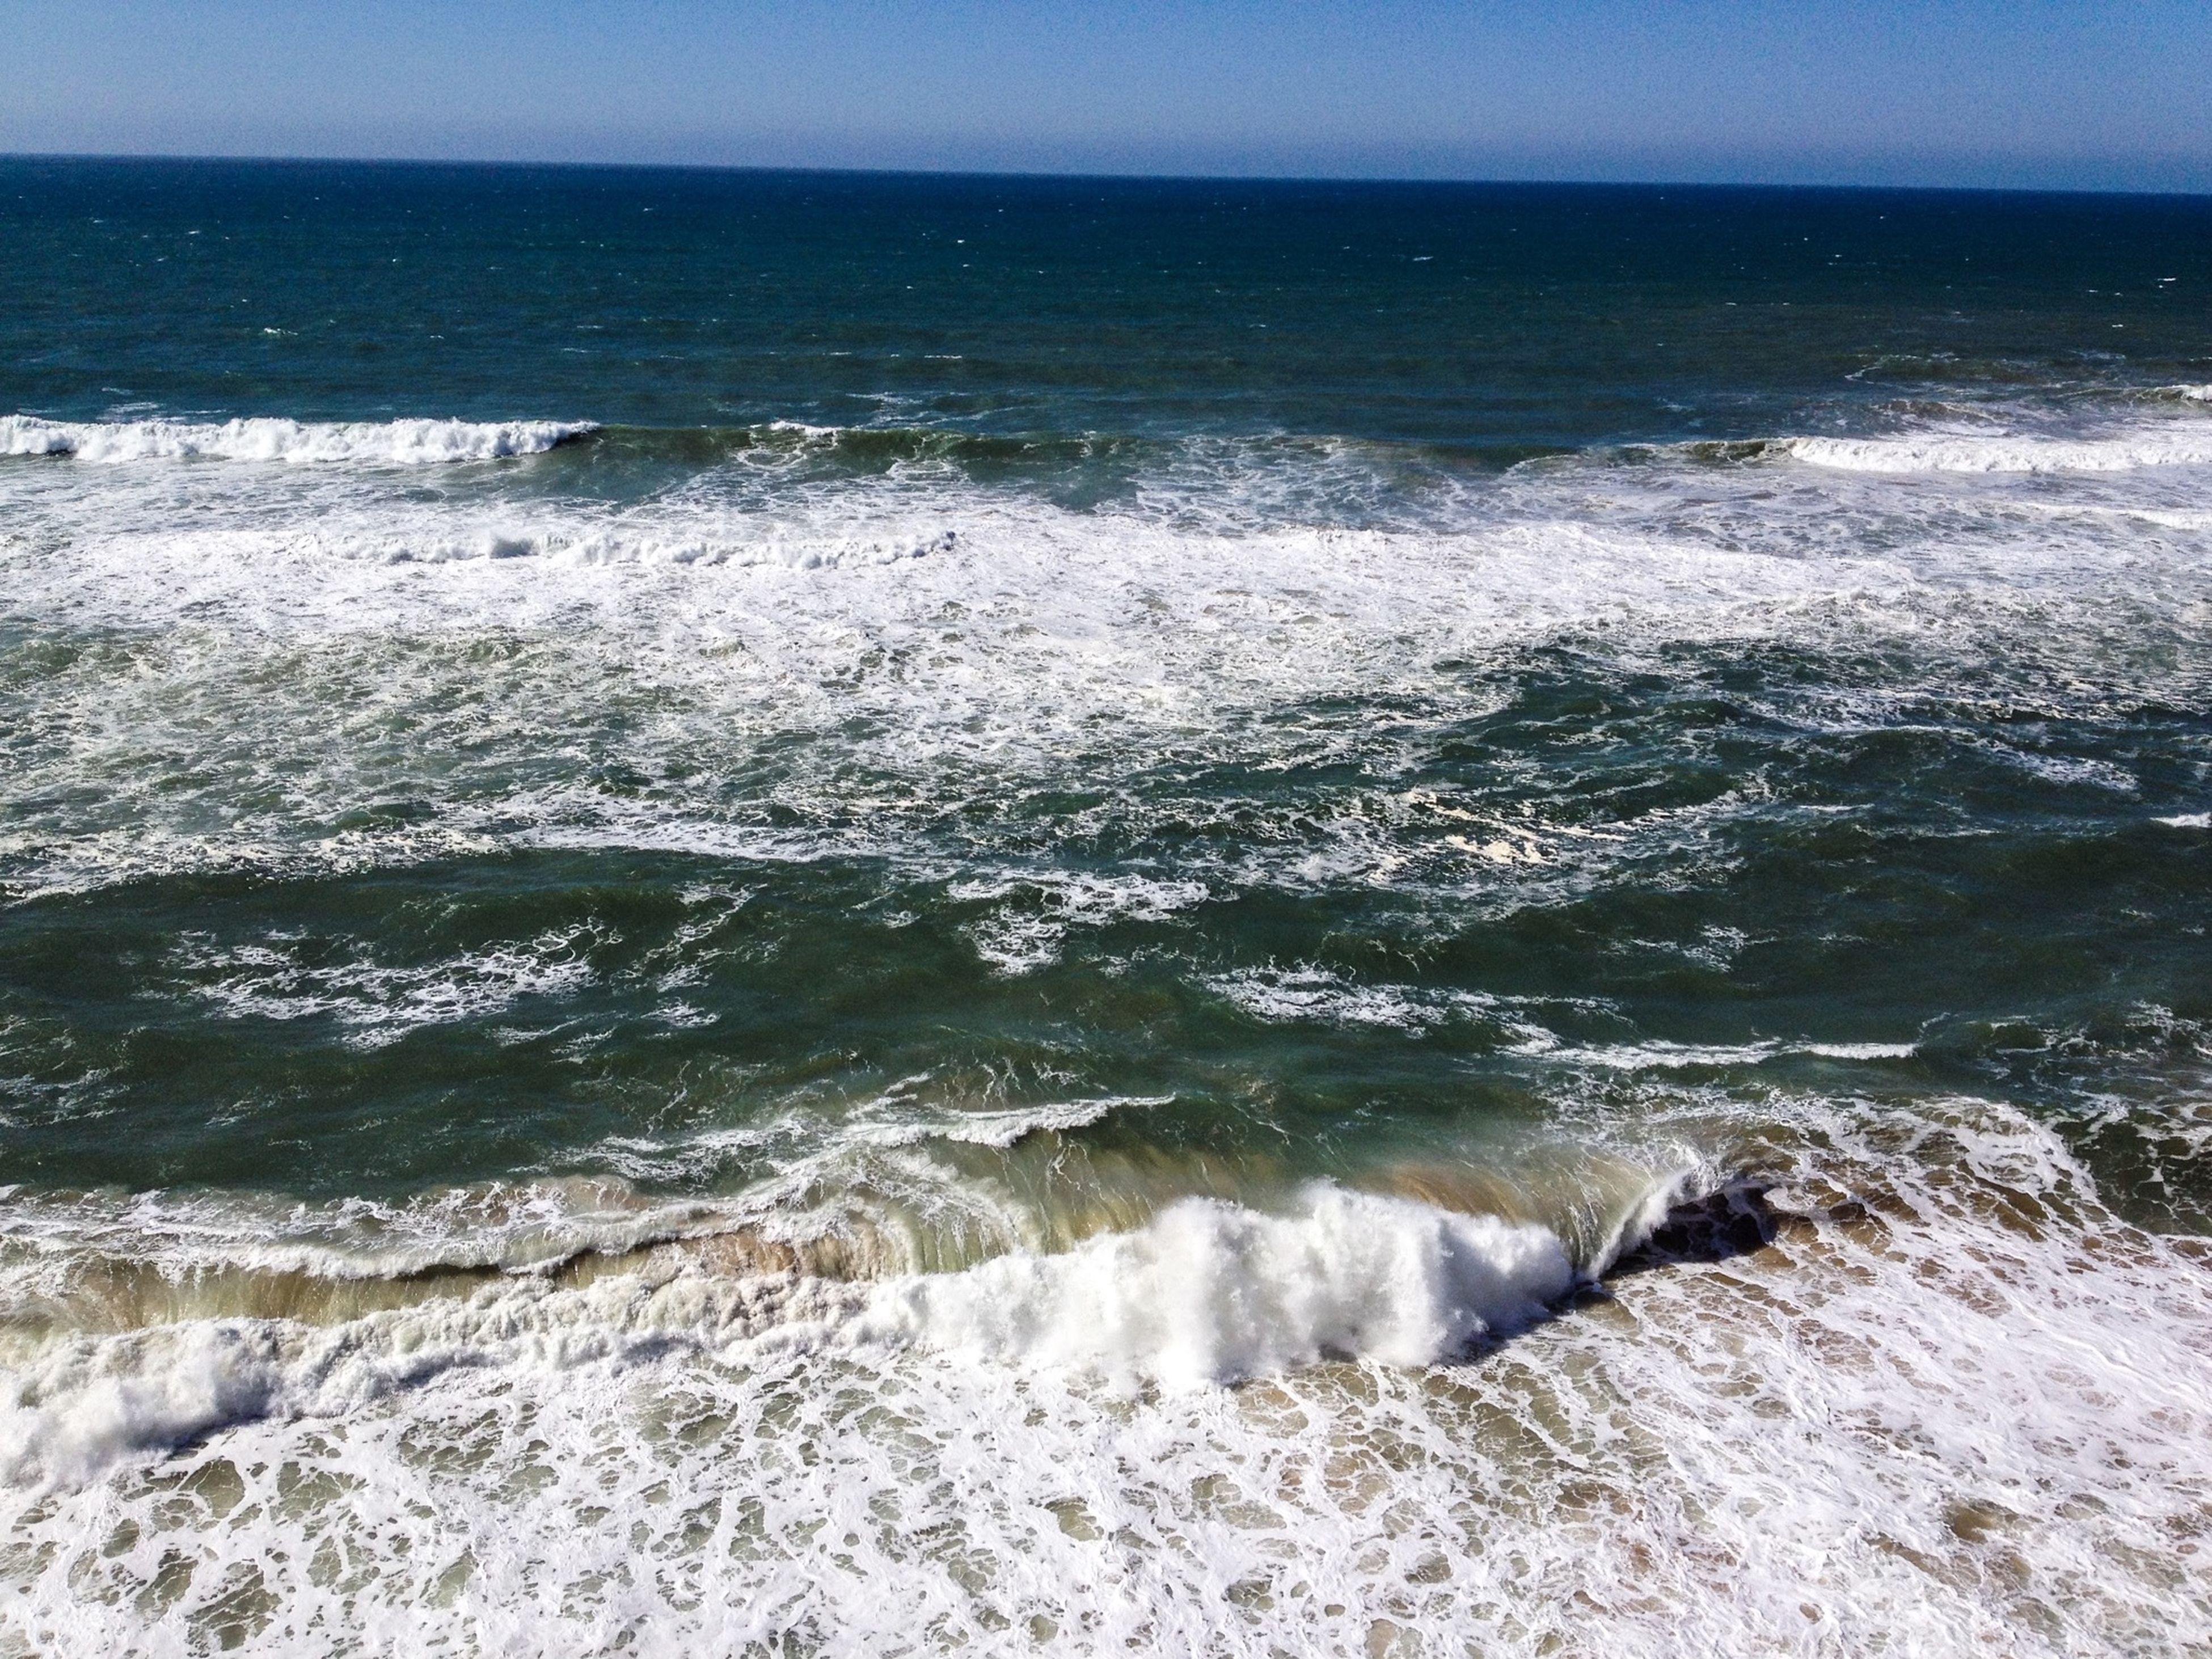 living in the foam of the waves That's Me Brightsaturday Thoughts Bons Sentimentos Photography Enjoying Life Poetry Colorphotography Sea